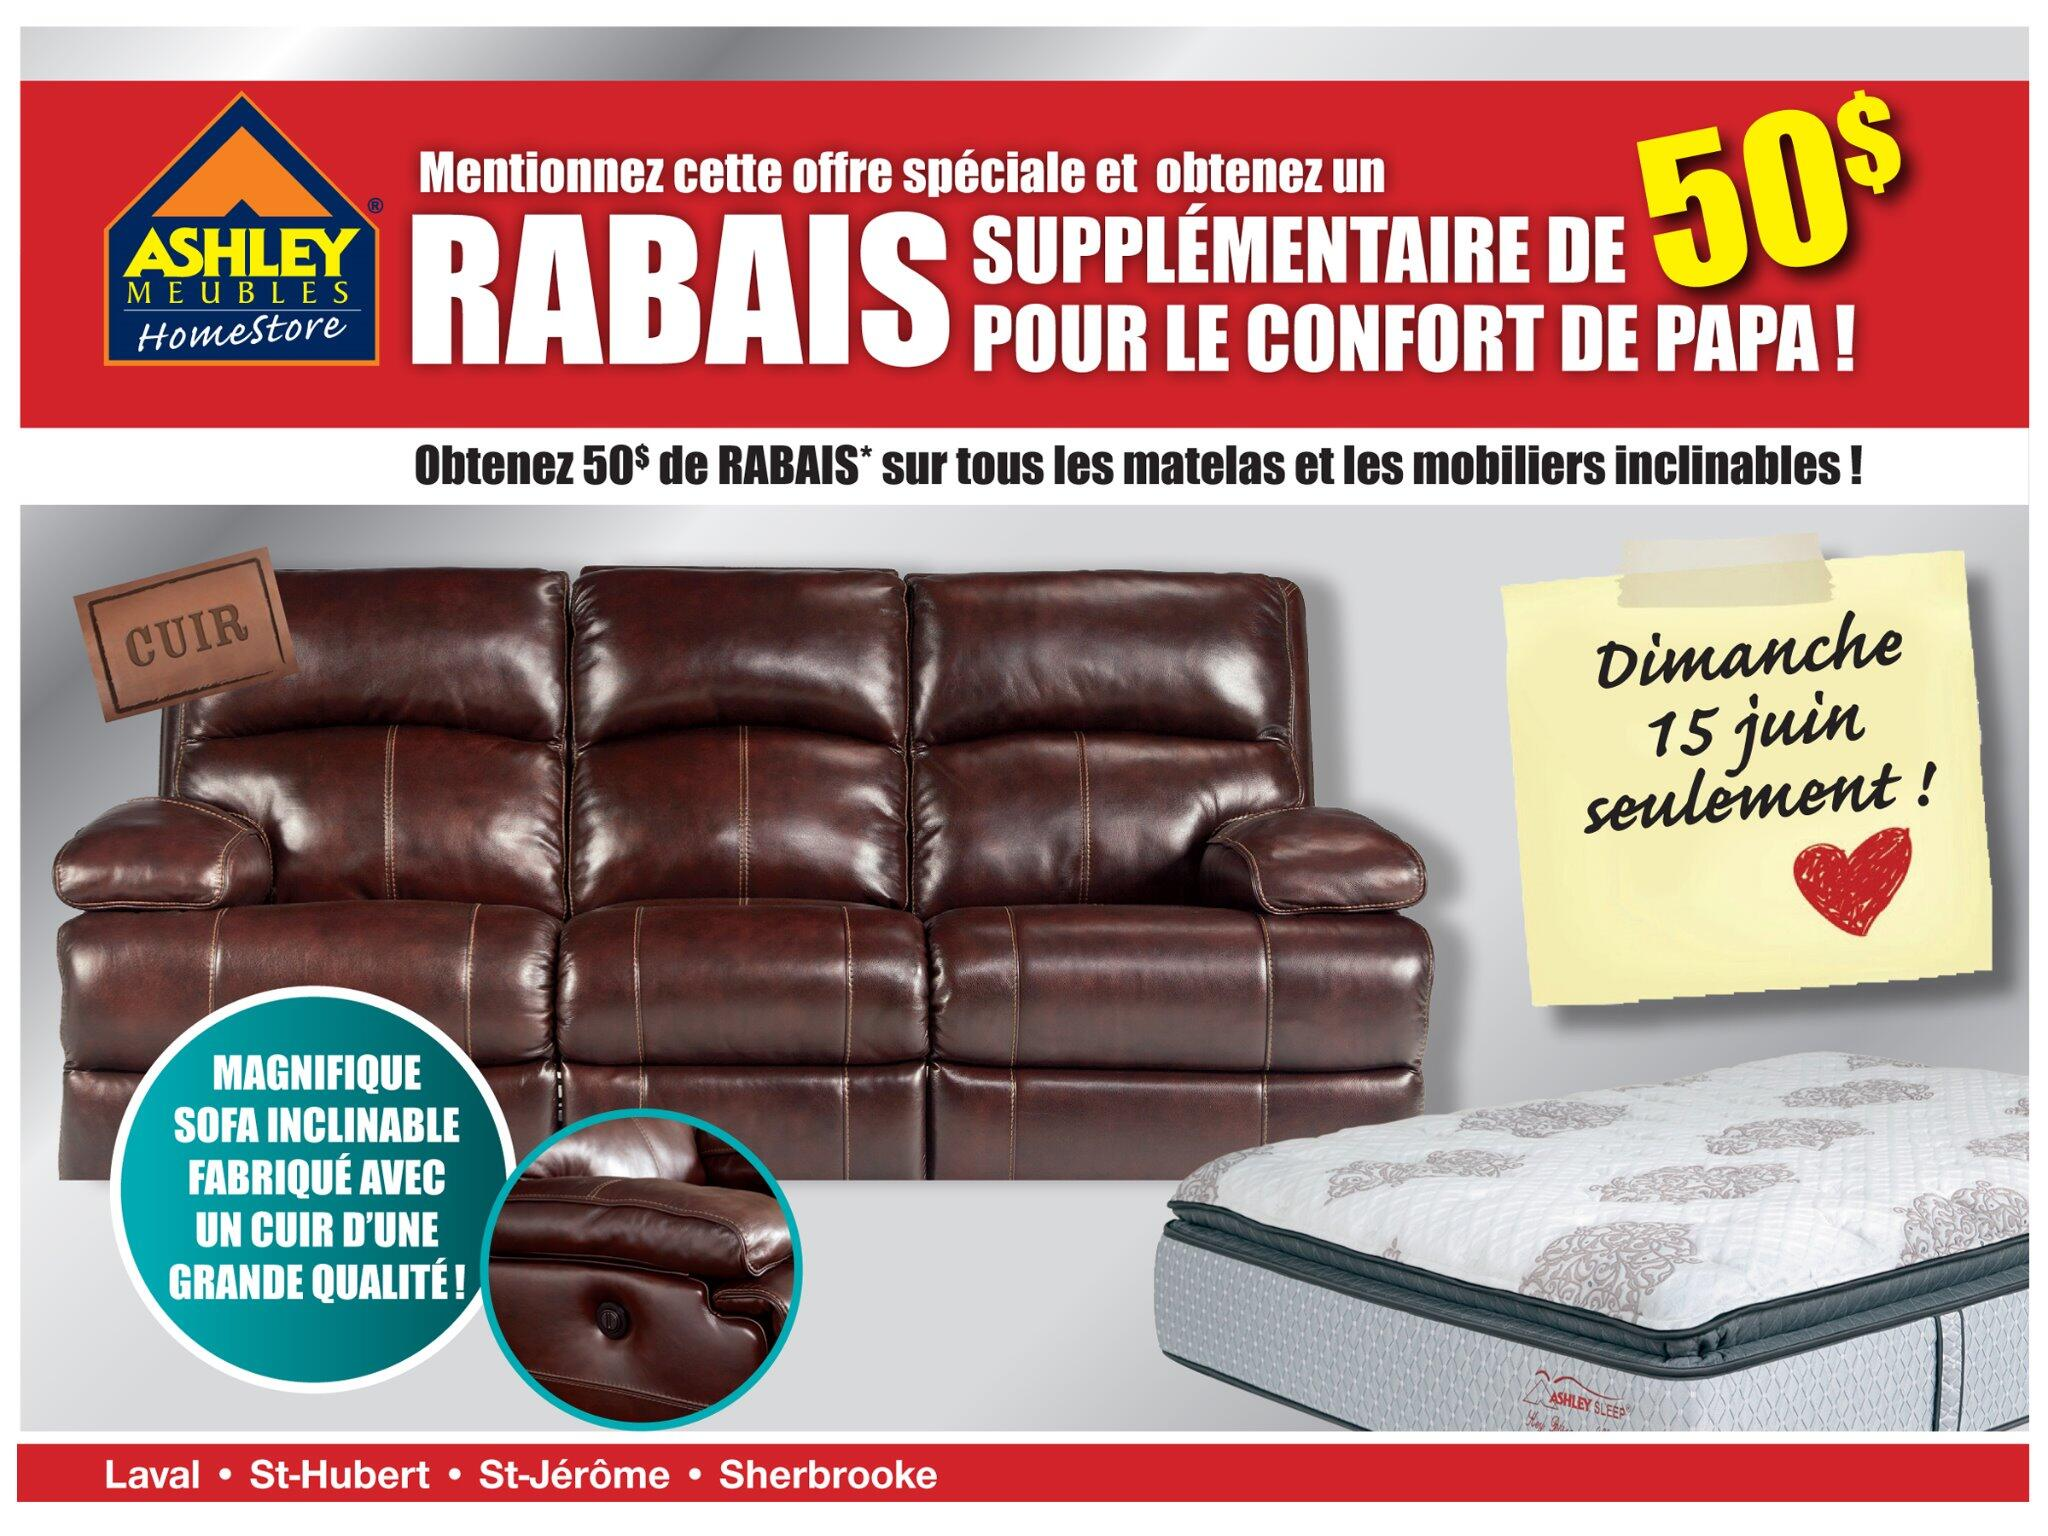 Meubles ashley meublesashley twitter for Meuble ashley prix